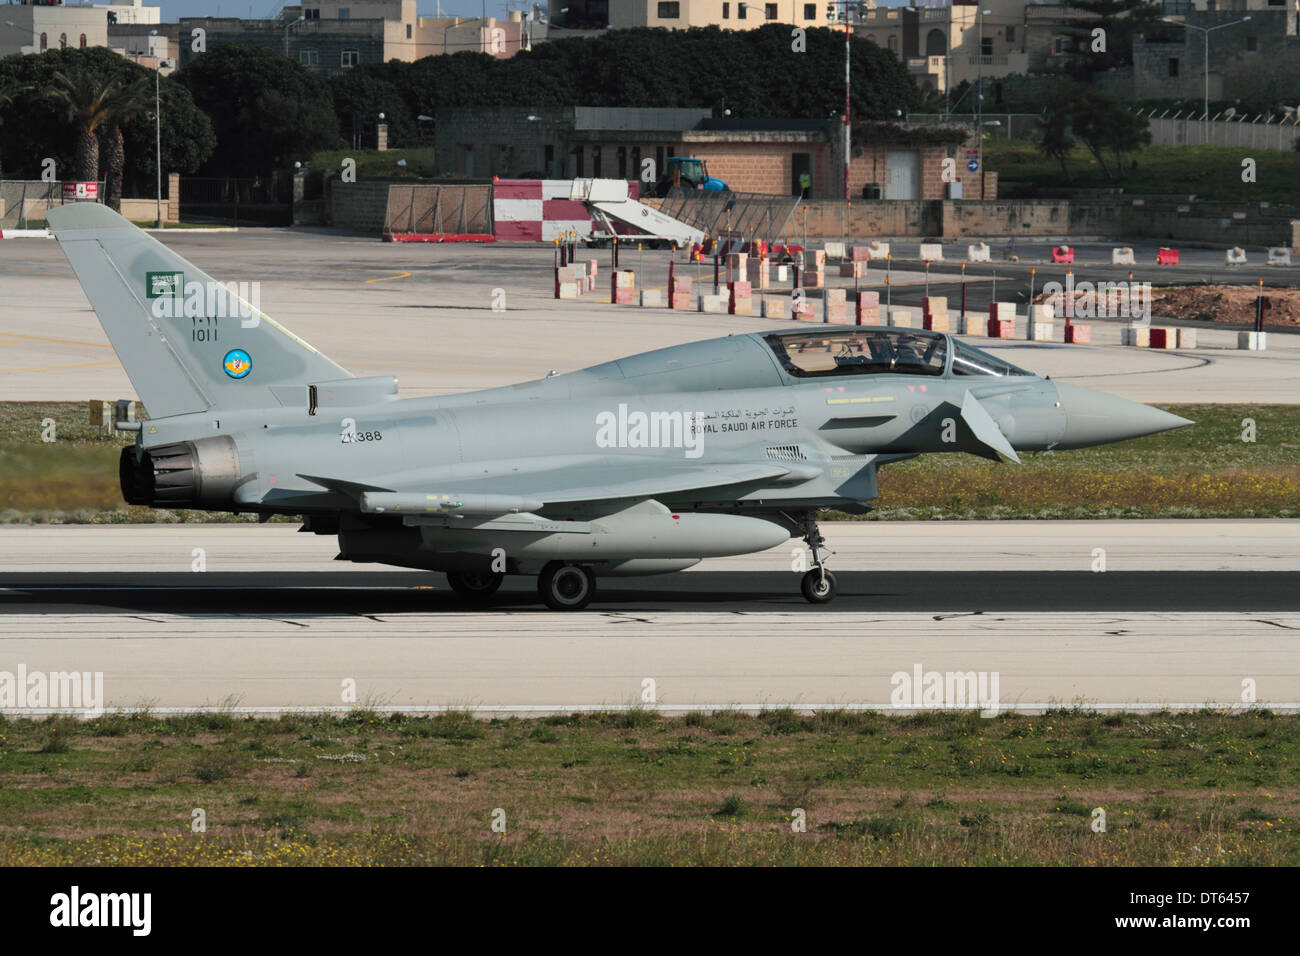 Eurofighter Typhoon fighter plane of the Royal Saudi Air Force taxiing for departure from Malta - Stock Image